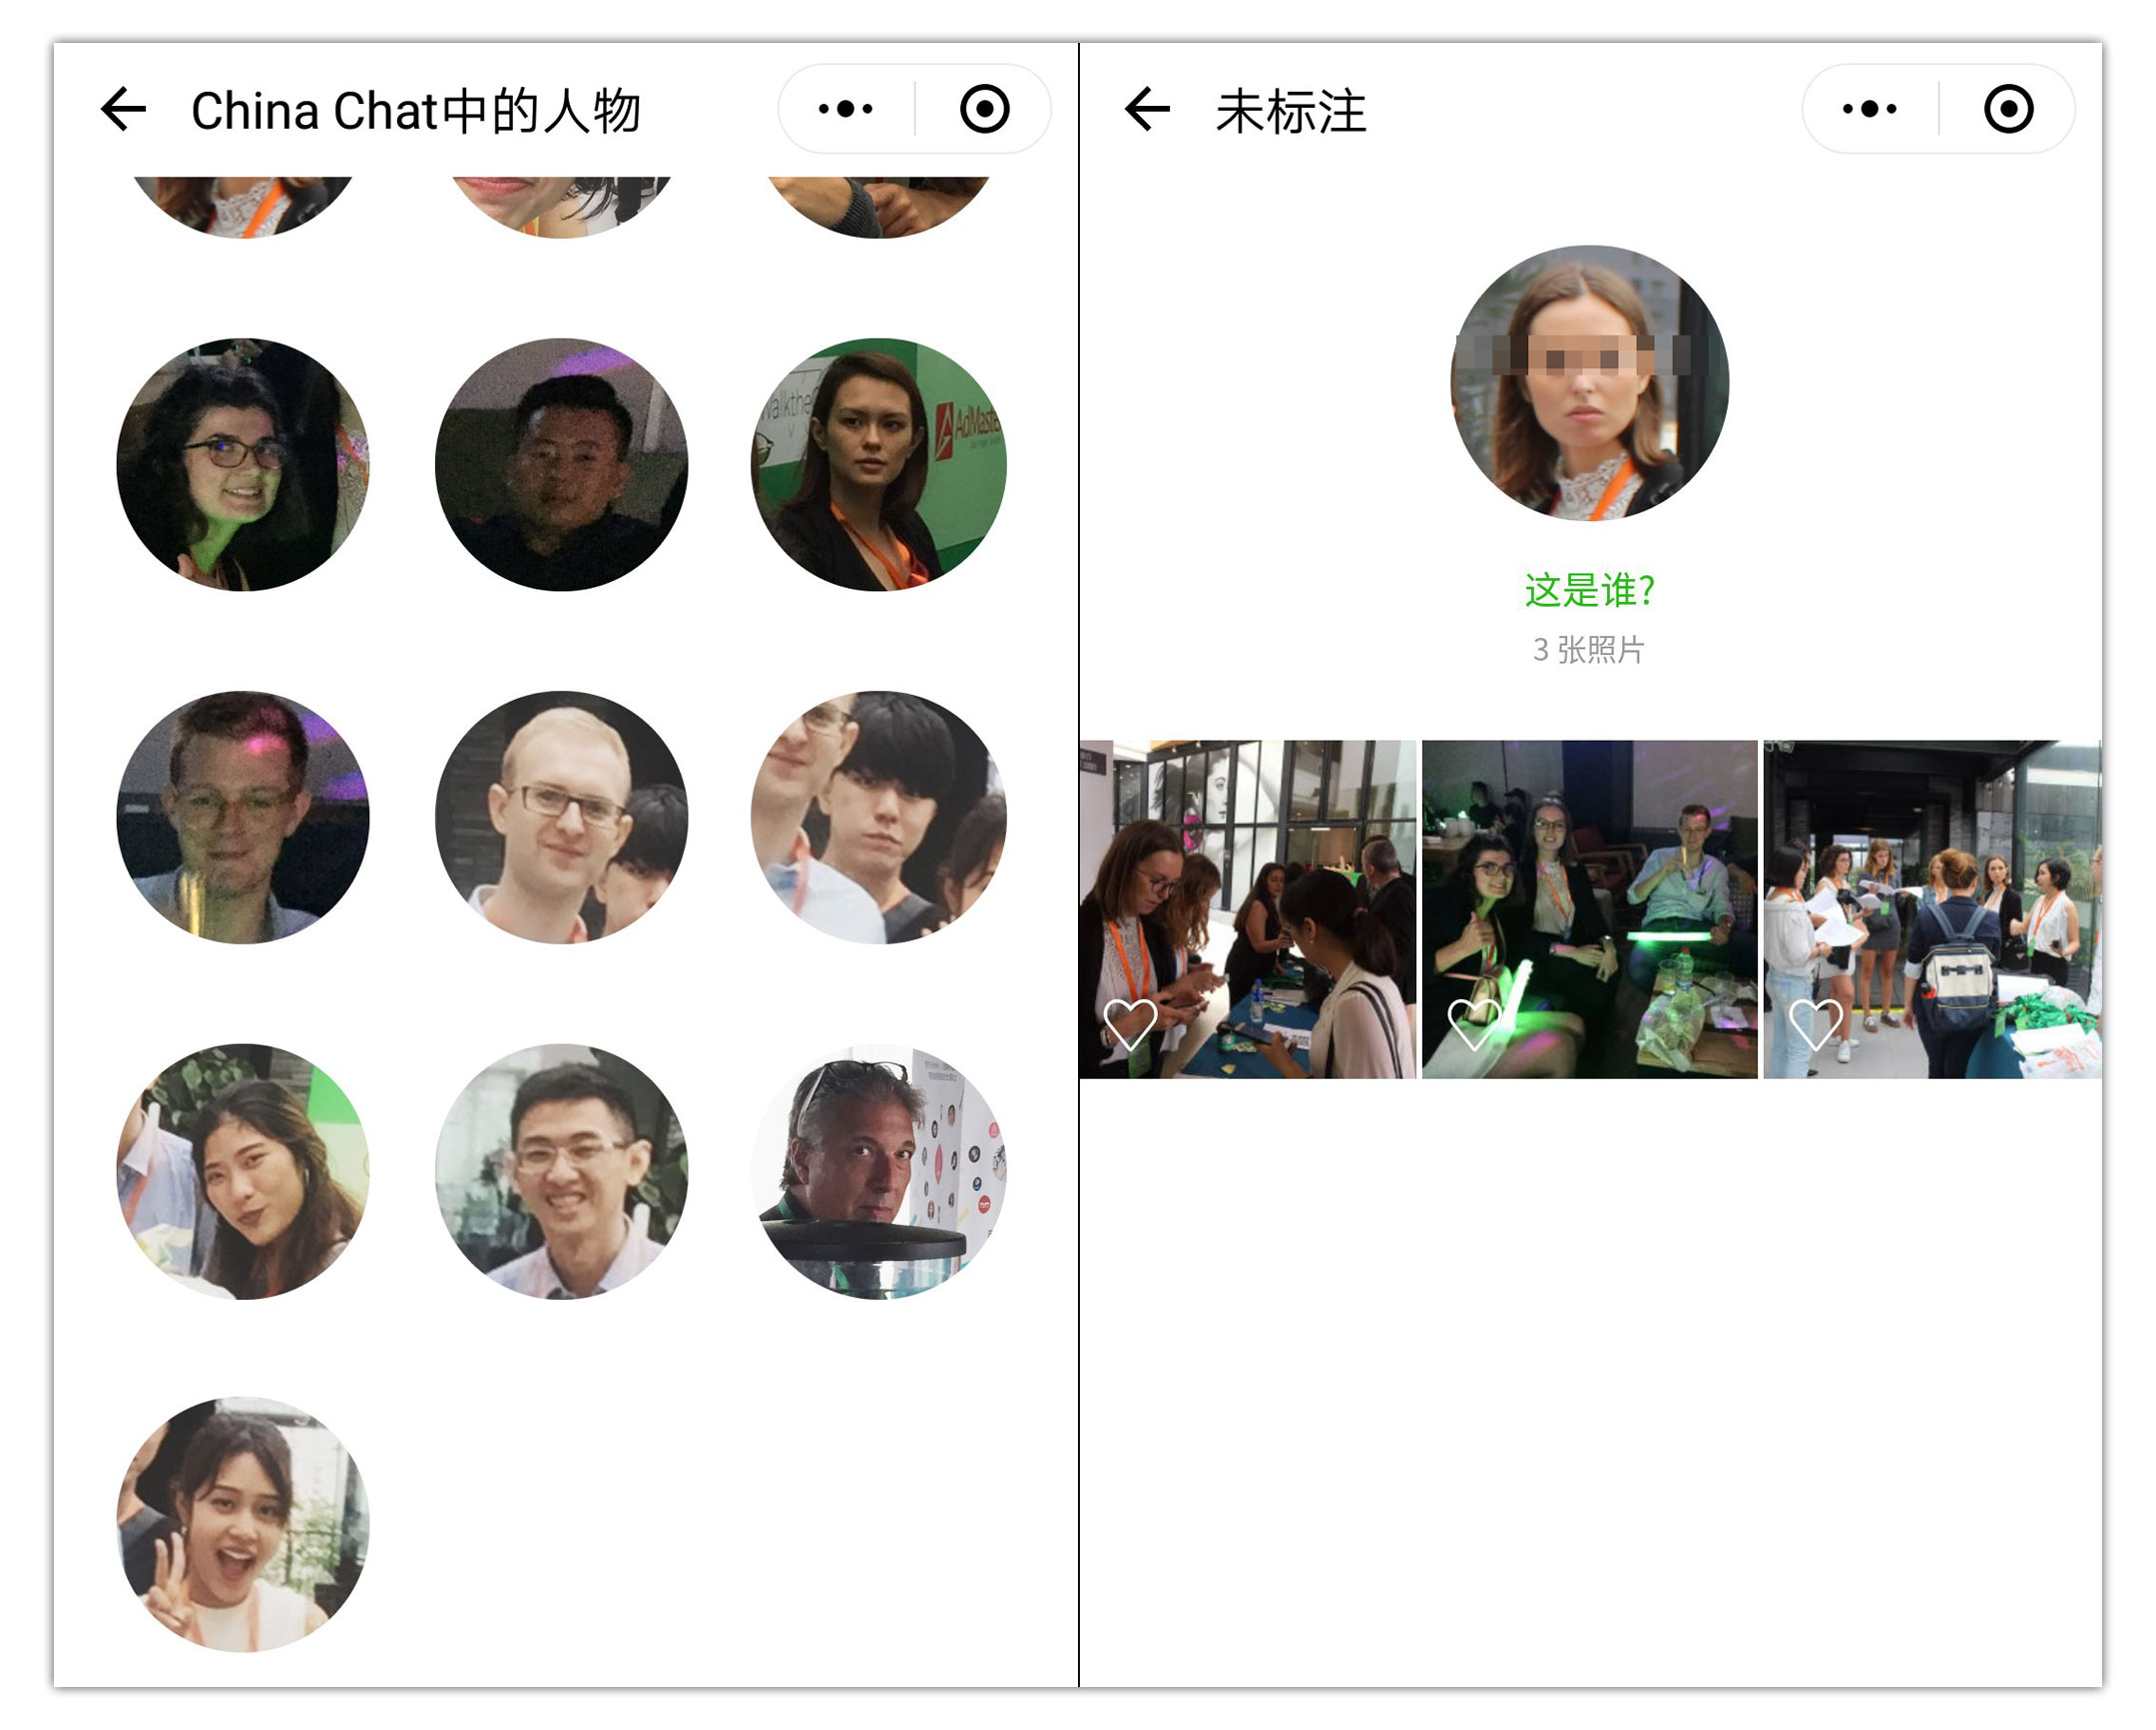 how to create wechat group